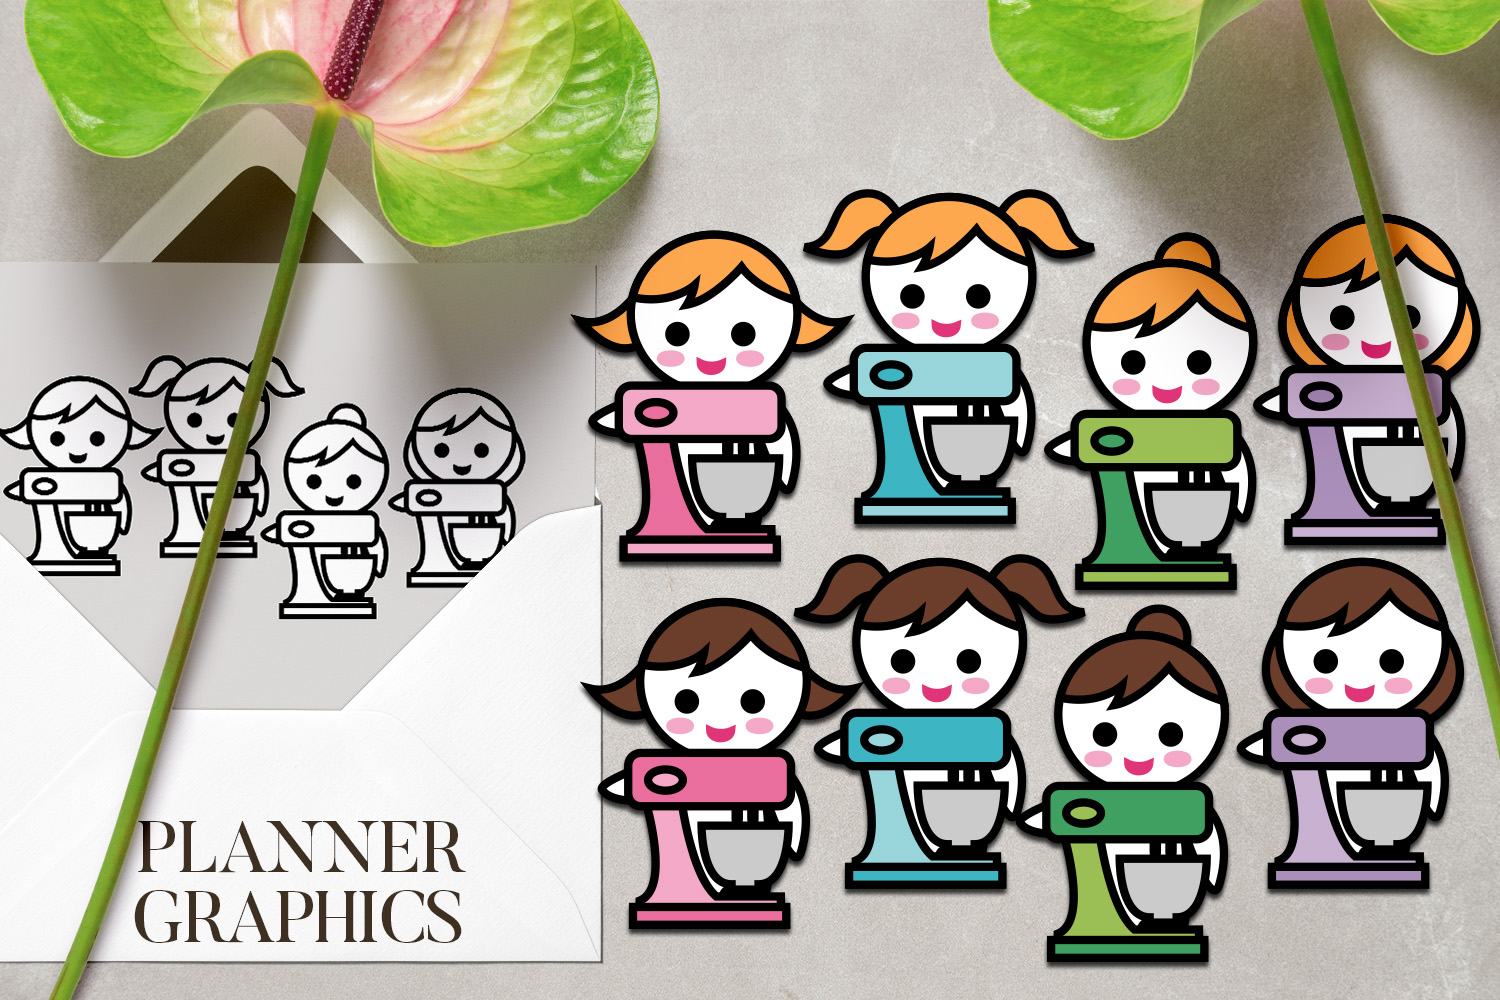 Hobby illustrations bundle - planner sticker graphics example image 7